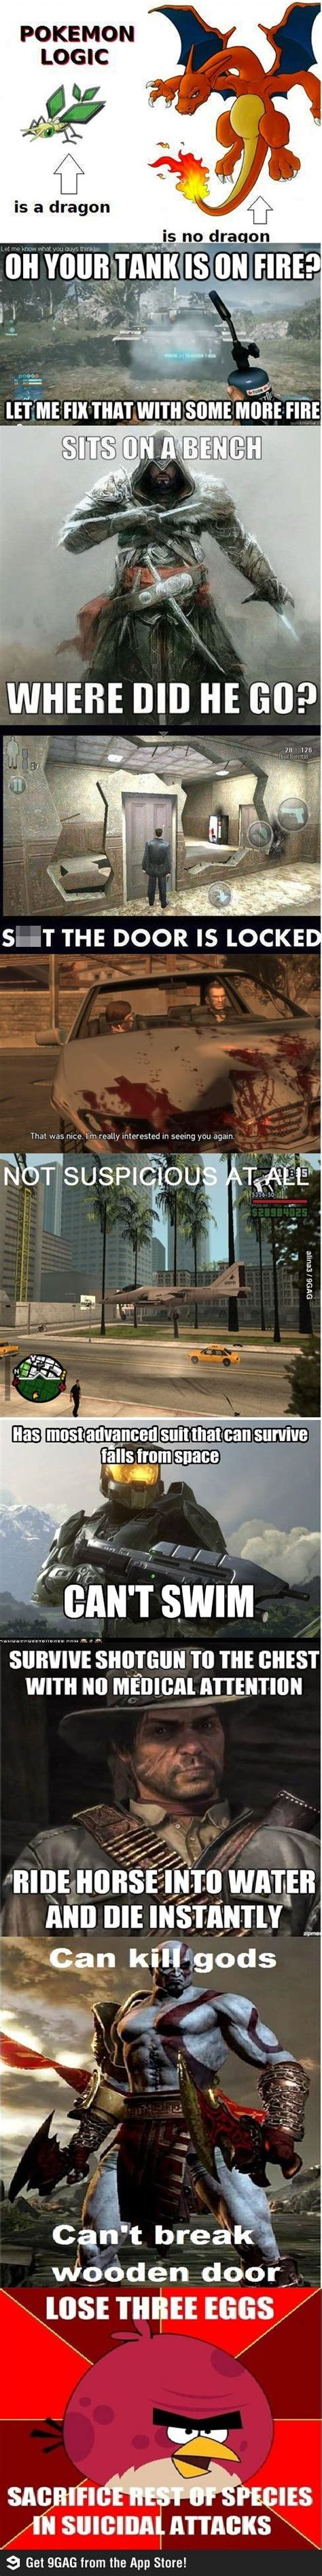 Video Game Logic Meme - 18 best console gaming images on pinterest video games